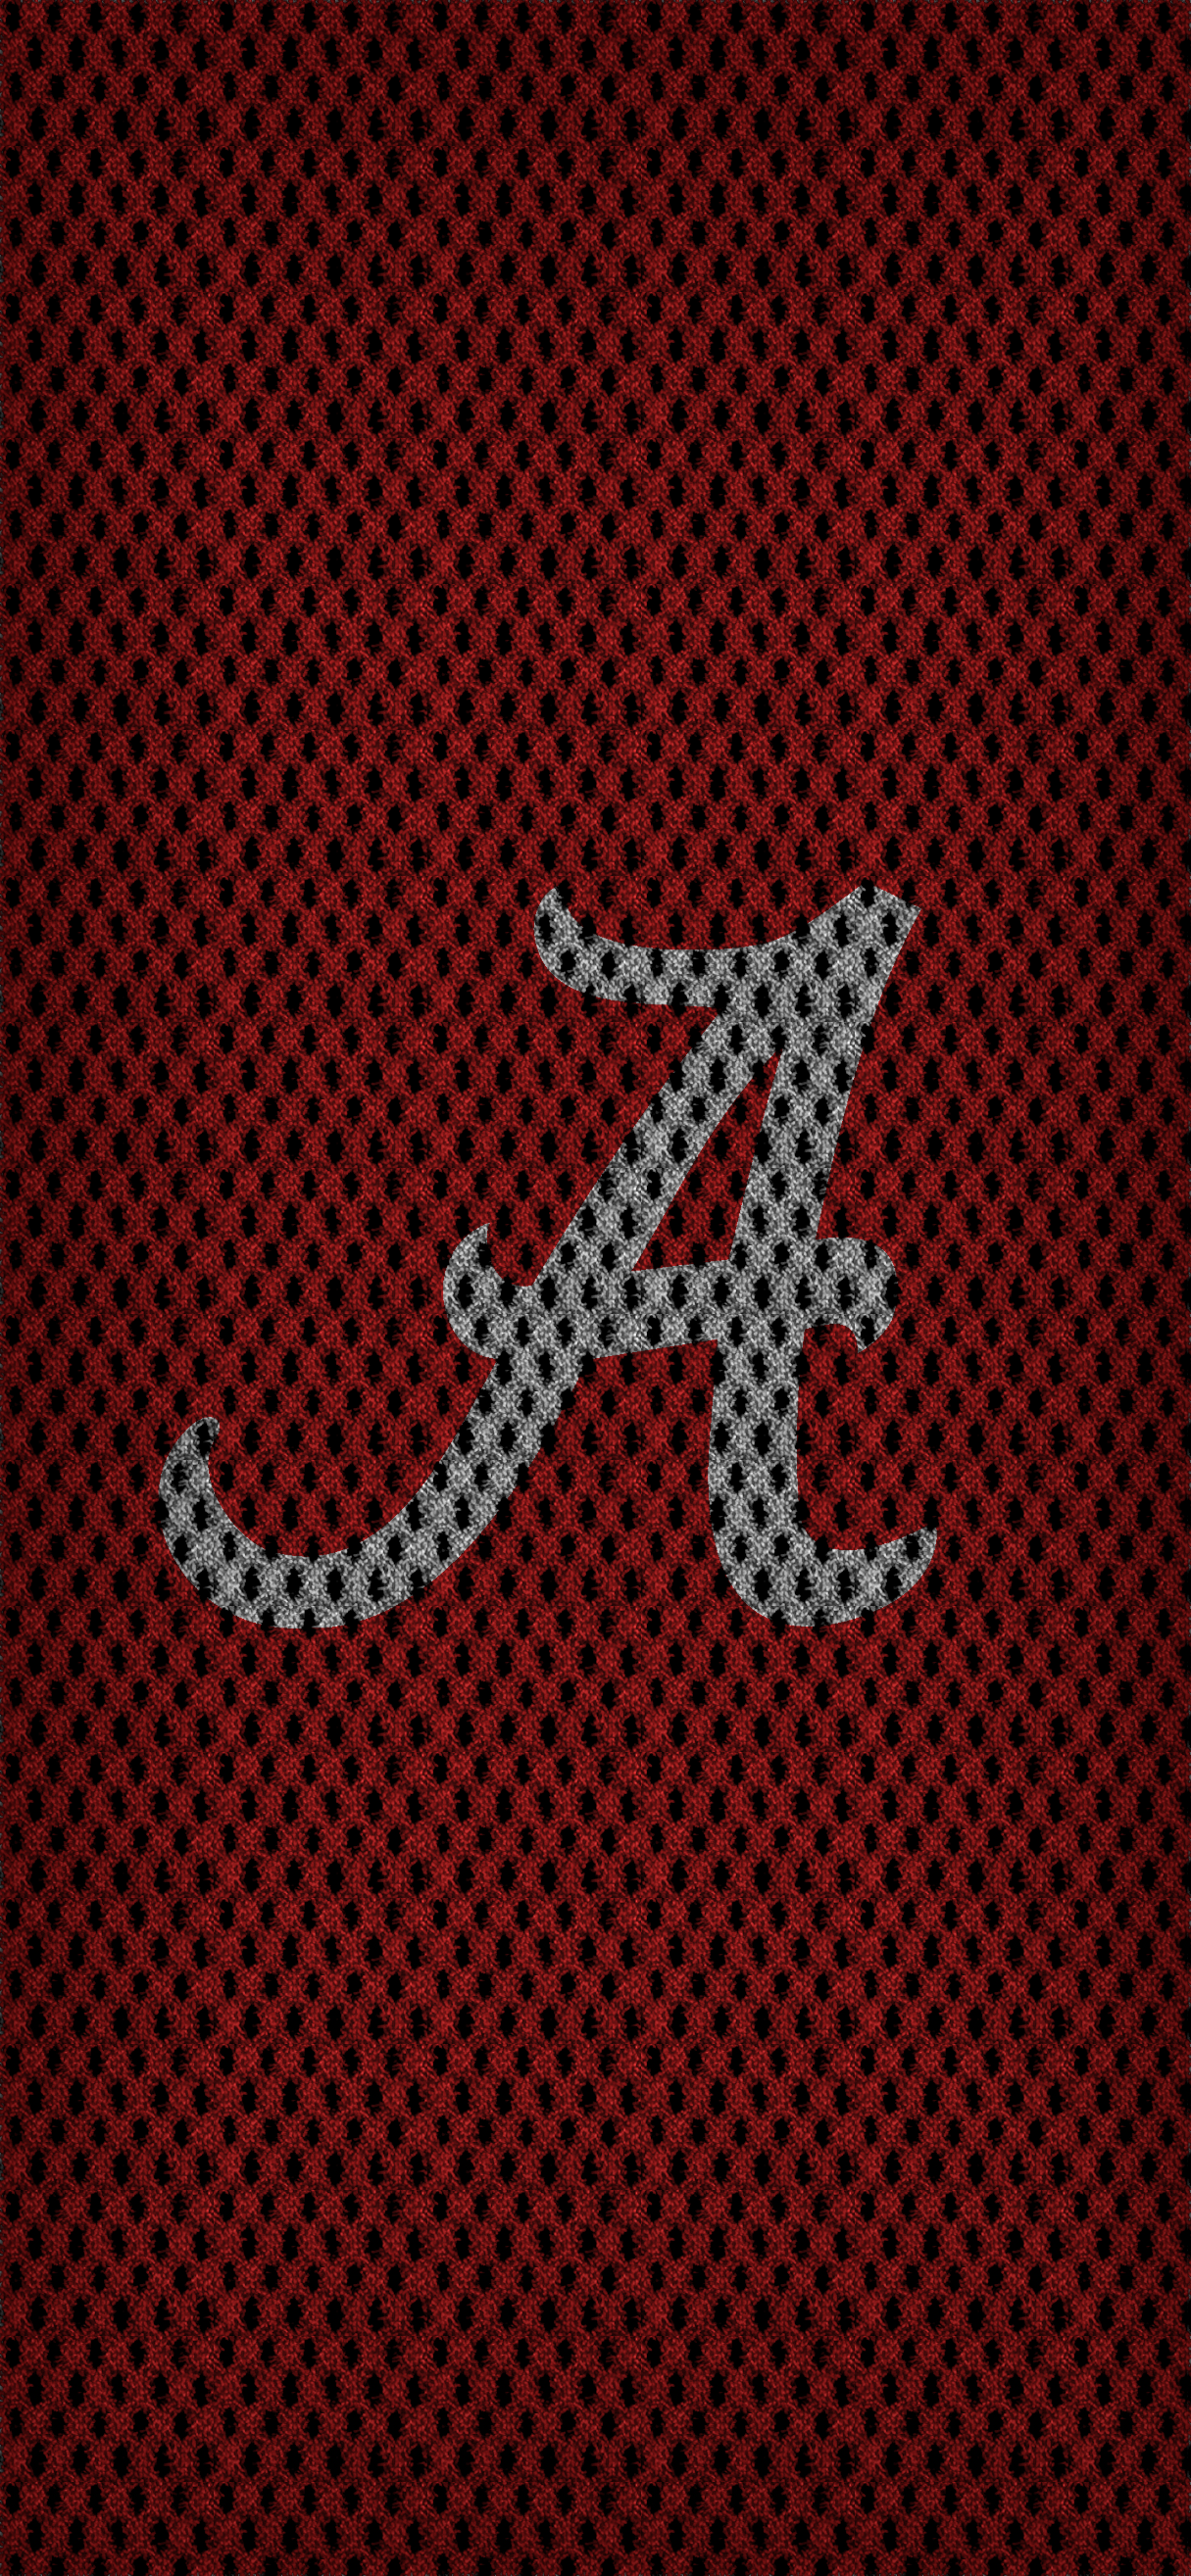 Alabama Football Wallpaper Alabama Crimson Tide Logo Alabama Wallpaper Football Wallpaper